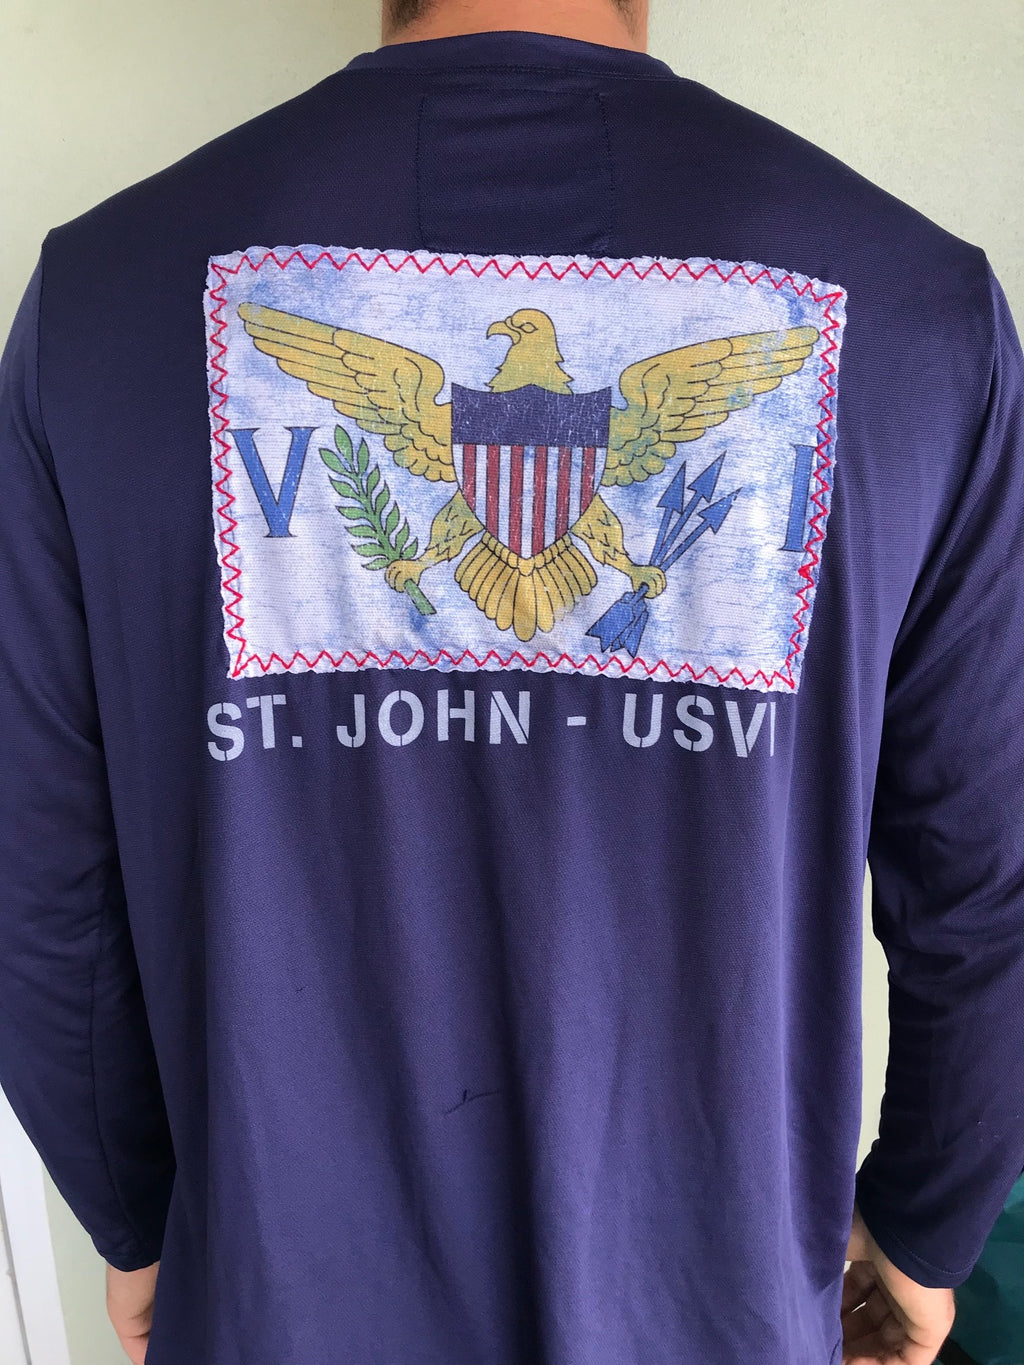 us virgin islands flag sewn as a patch with St John text